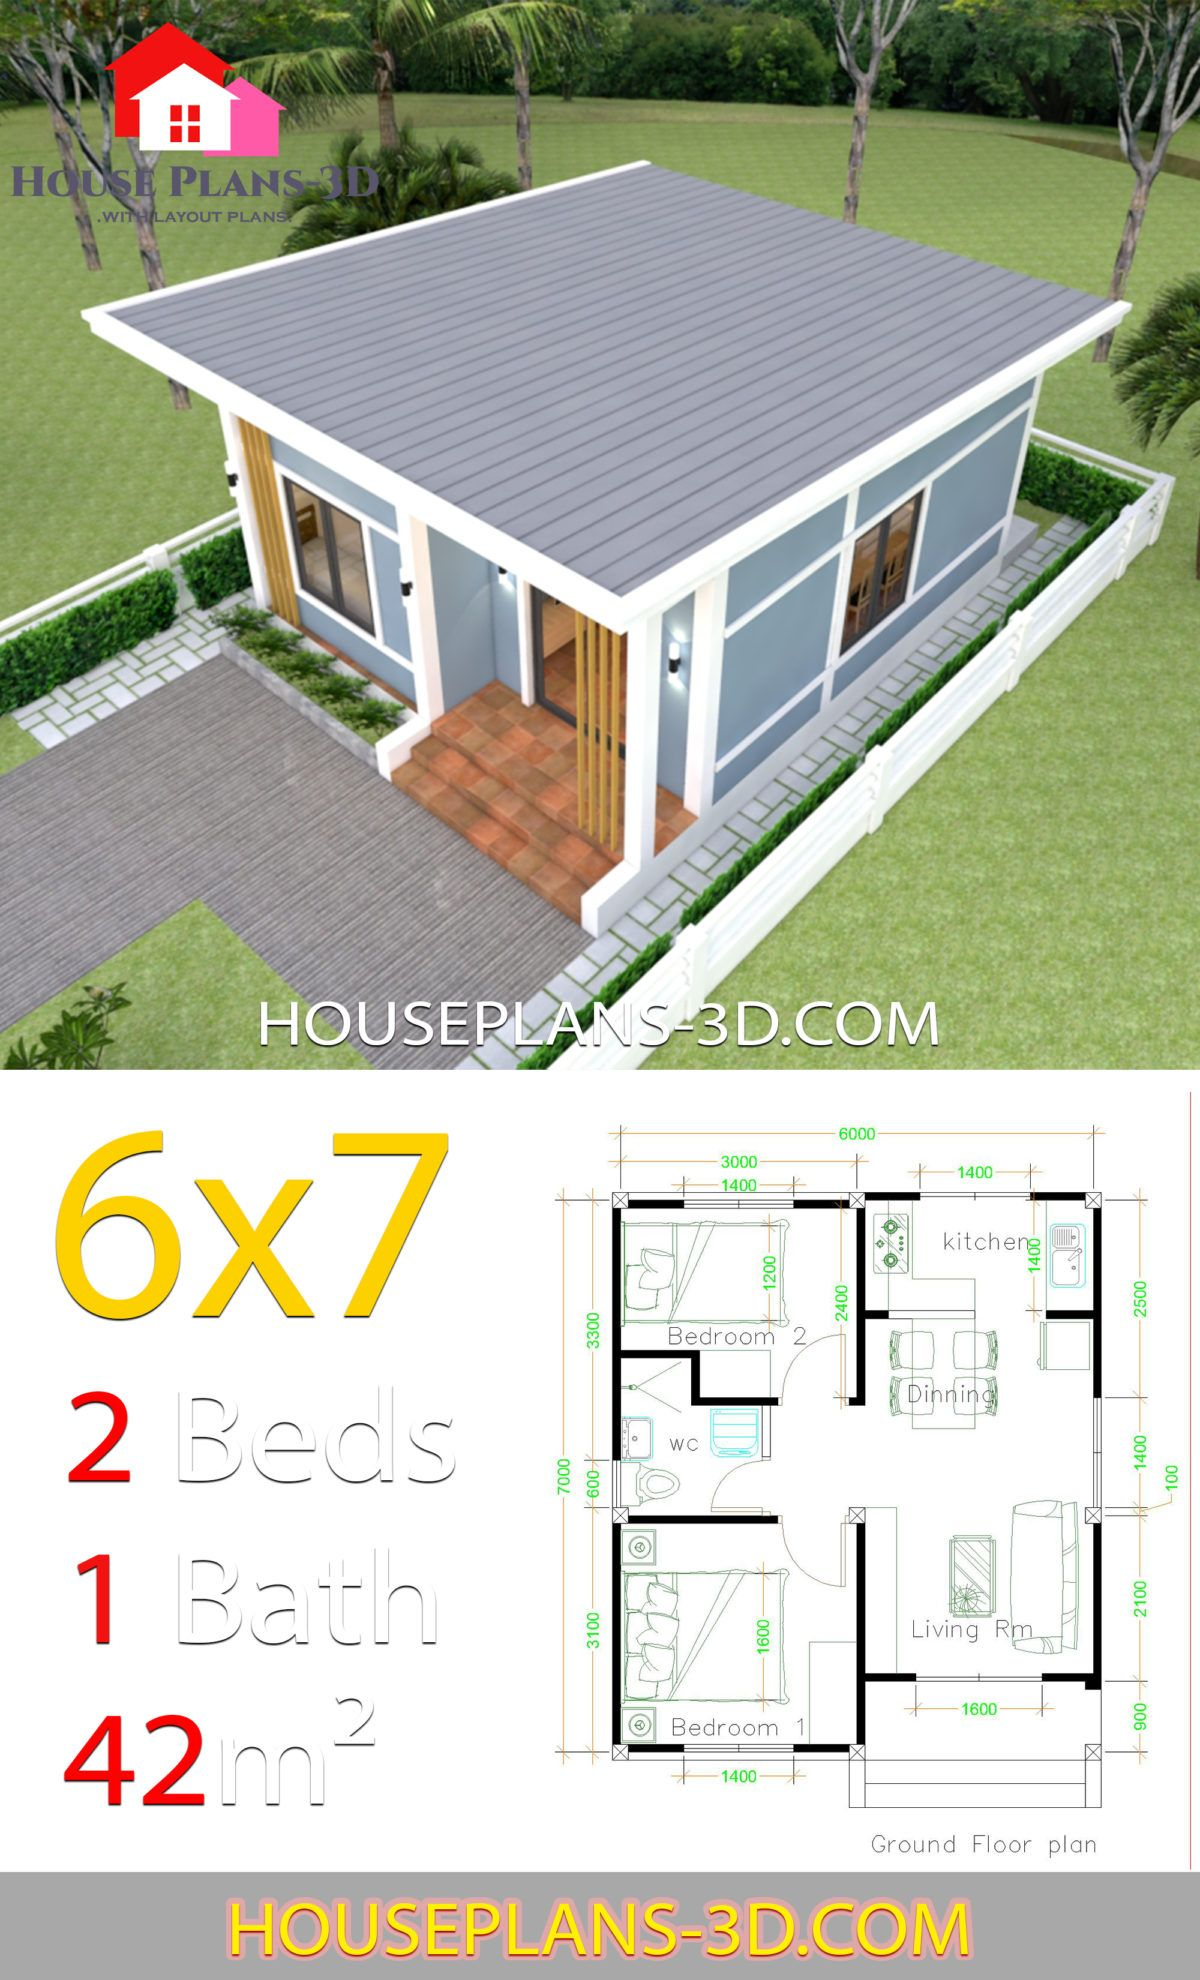 Small House Design Plans 5x7 With One Bedroom Shed Roof Tiny House Plans Small House Design Plans 1 Bedroom House Plans One Bedroom House